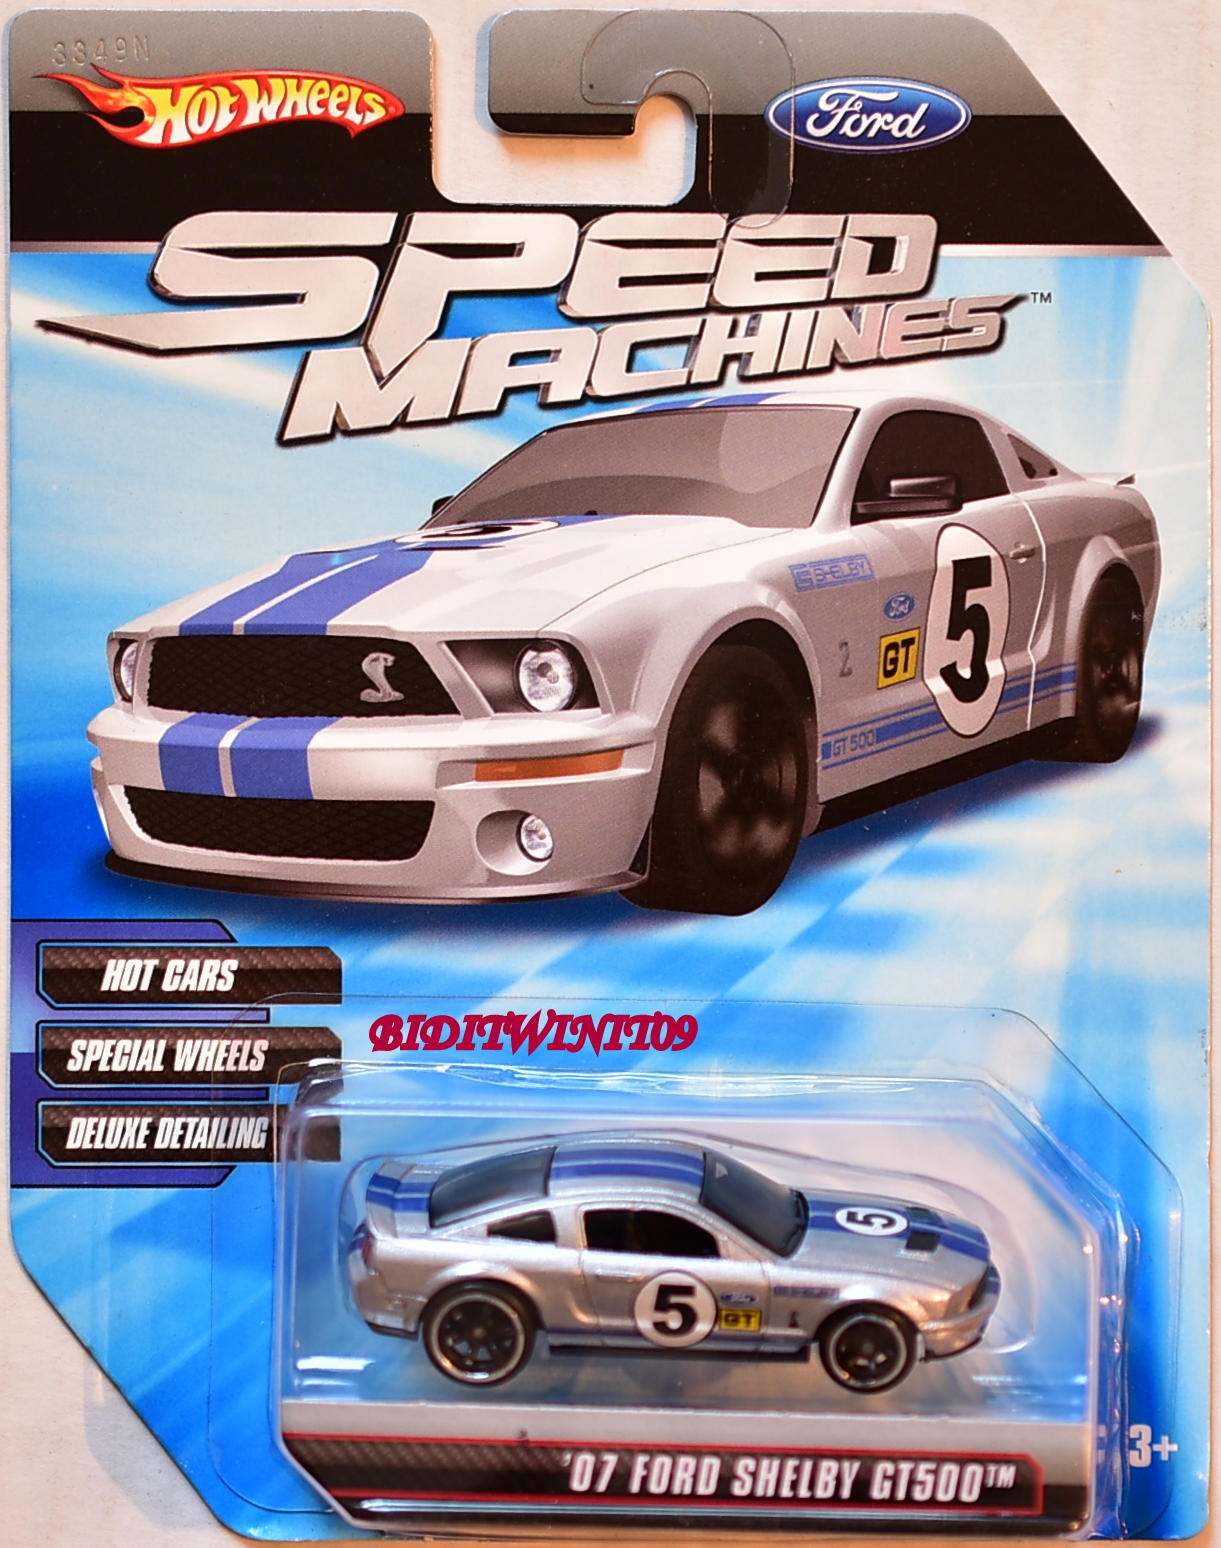 HOT WHEELS SPEED MACHINES '07 FORD SHELBY GT500 SILVER E+